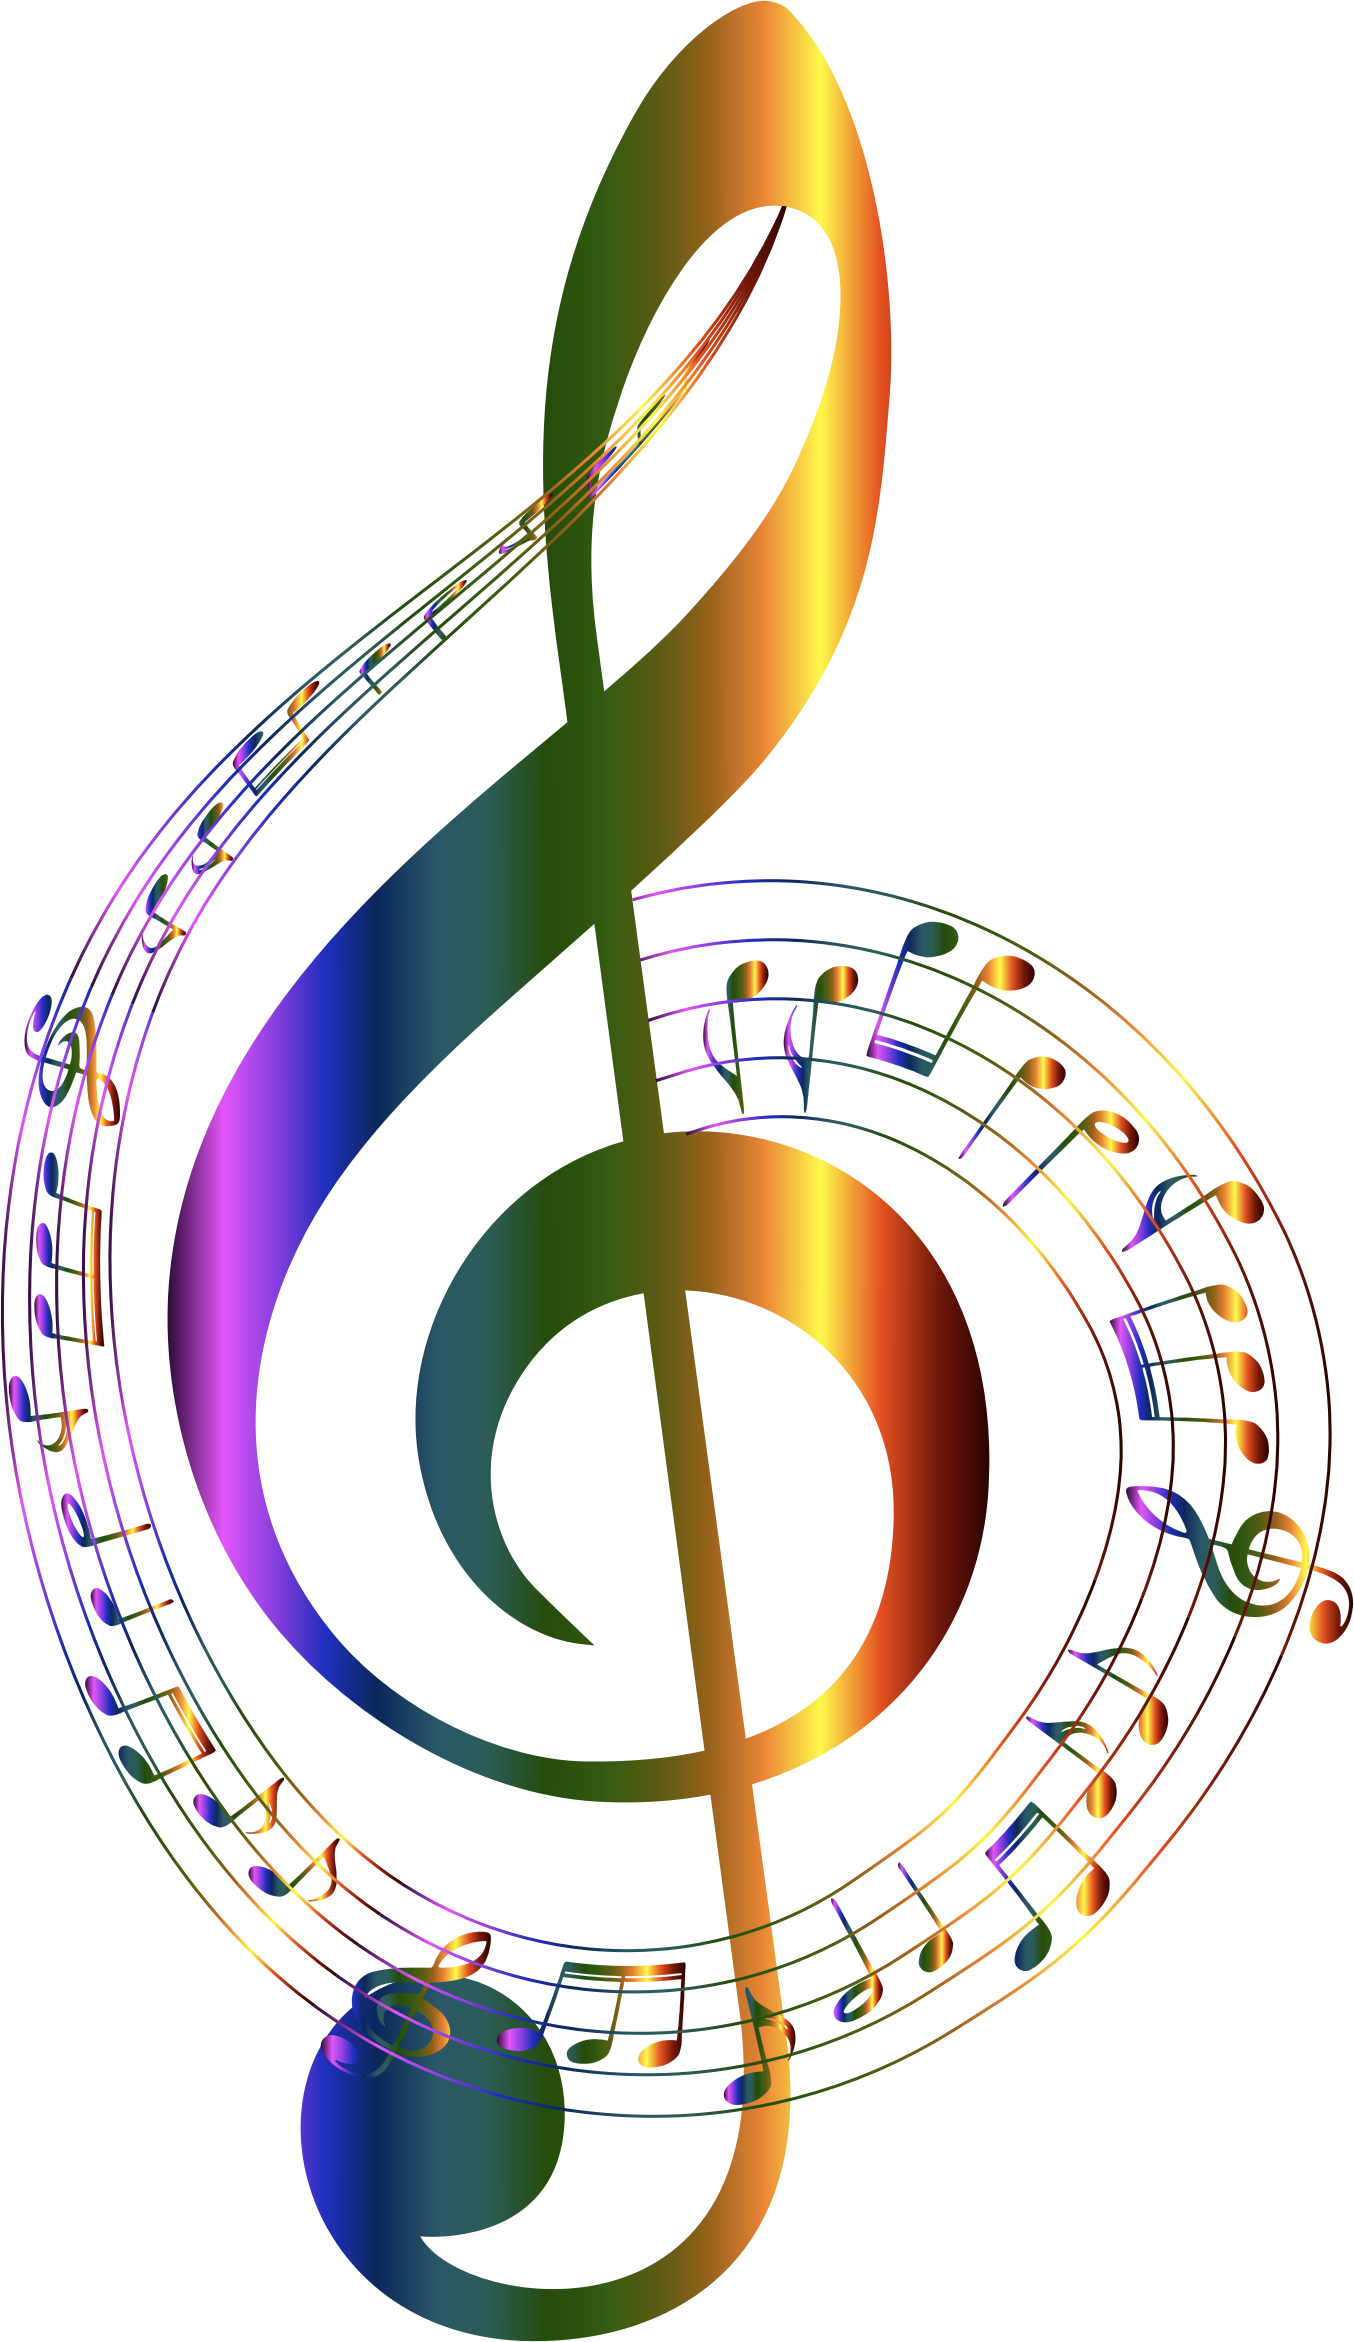 Music background png. Chromatic musical notes typography